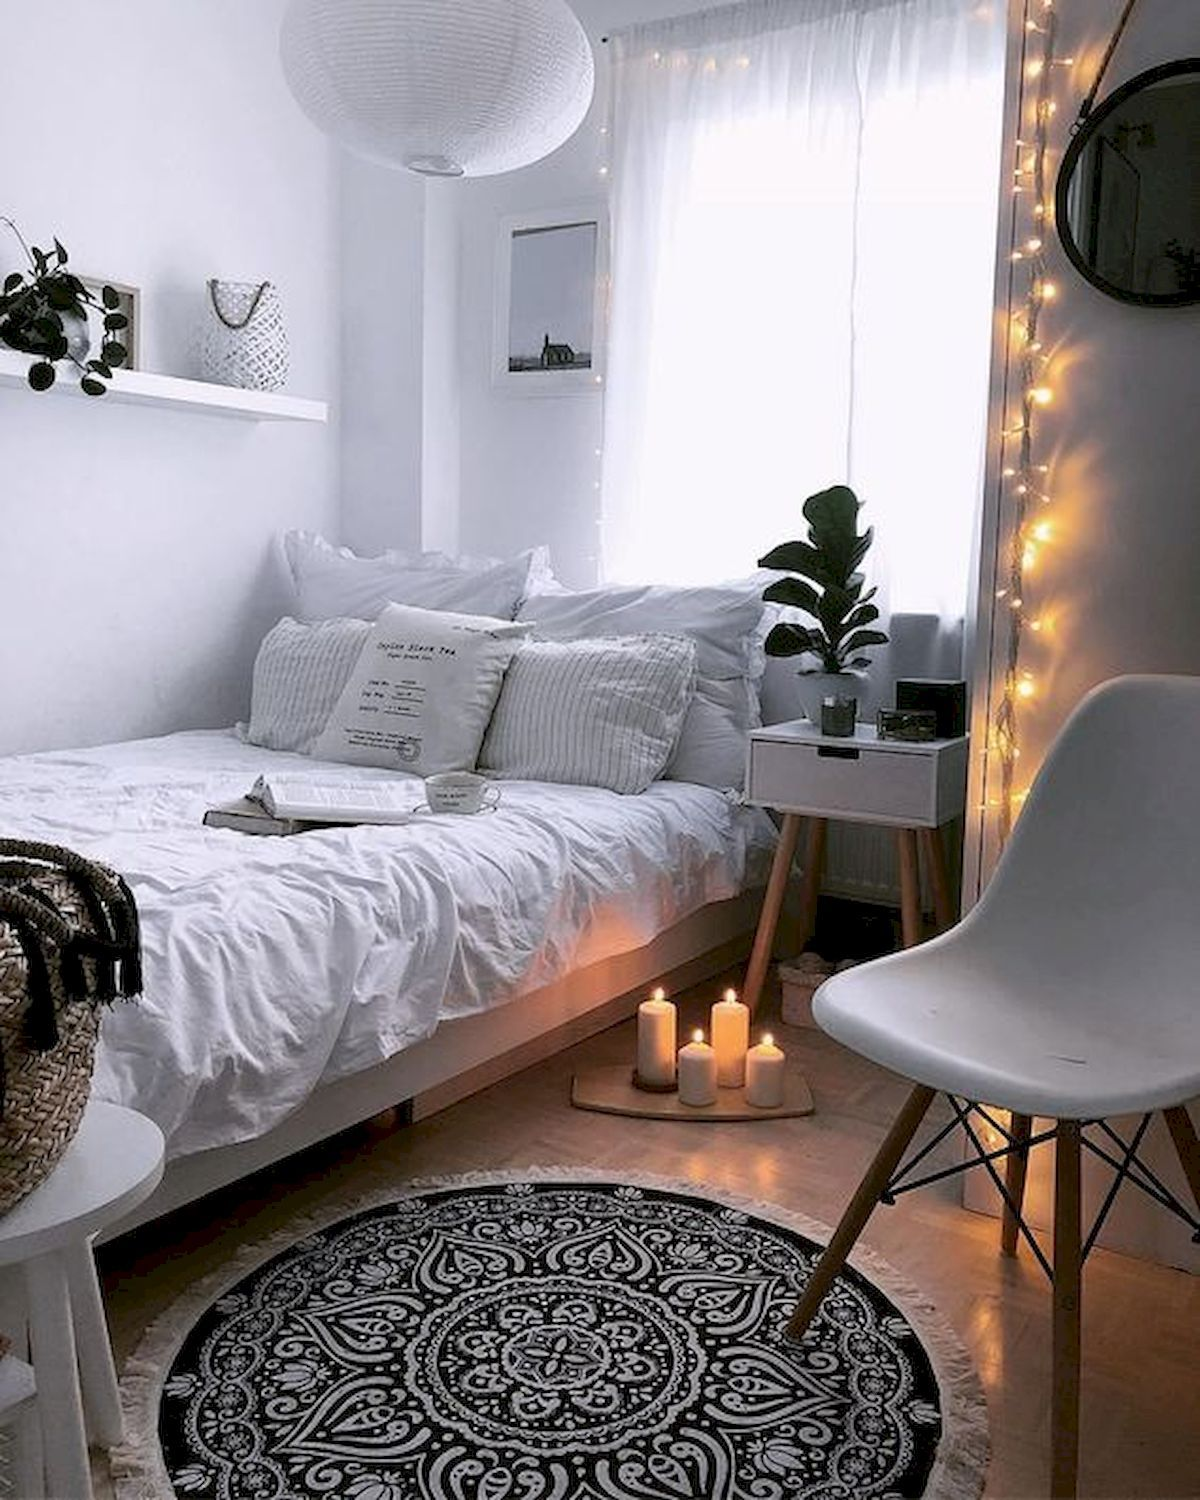 33 Ideas For Small Apartment Bedroom33decor In 2020 Small